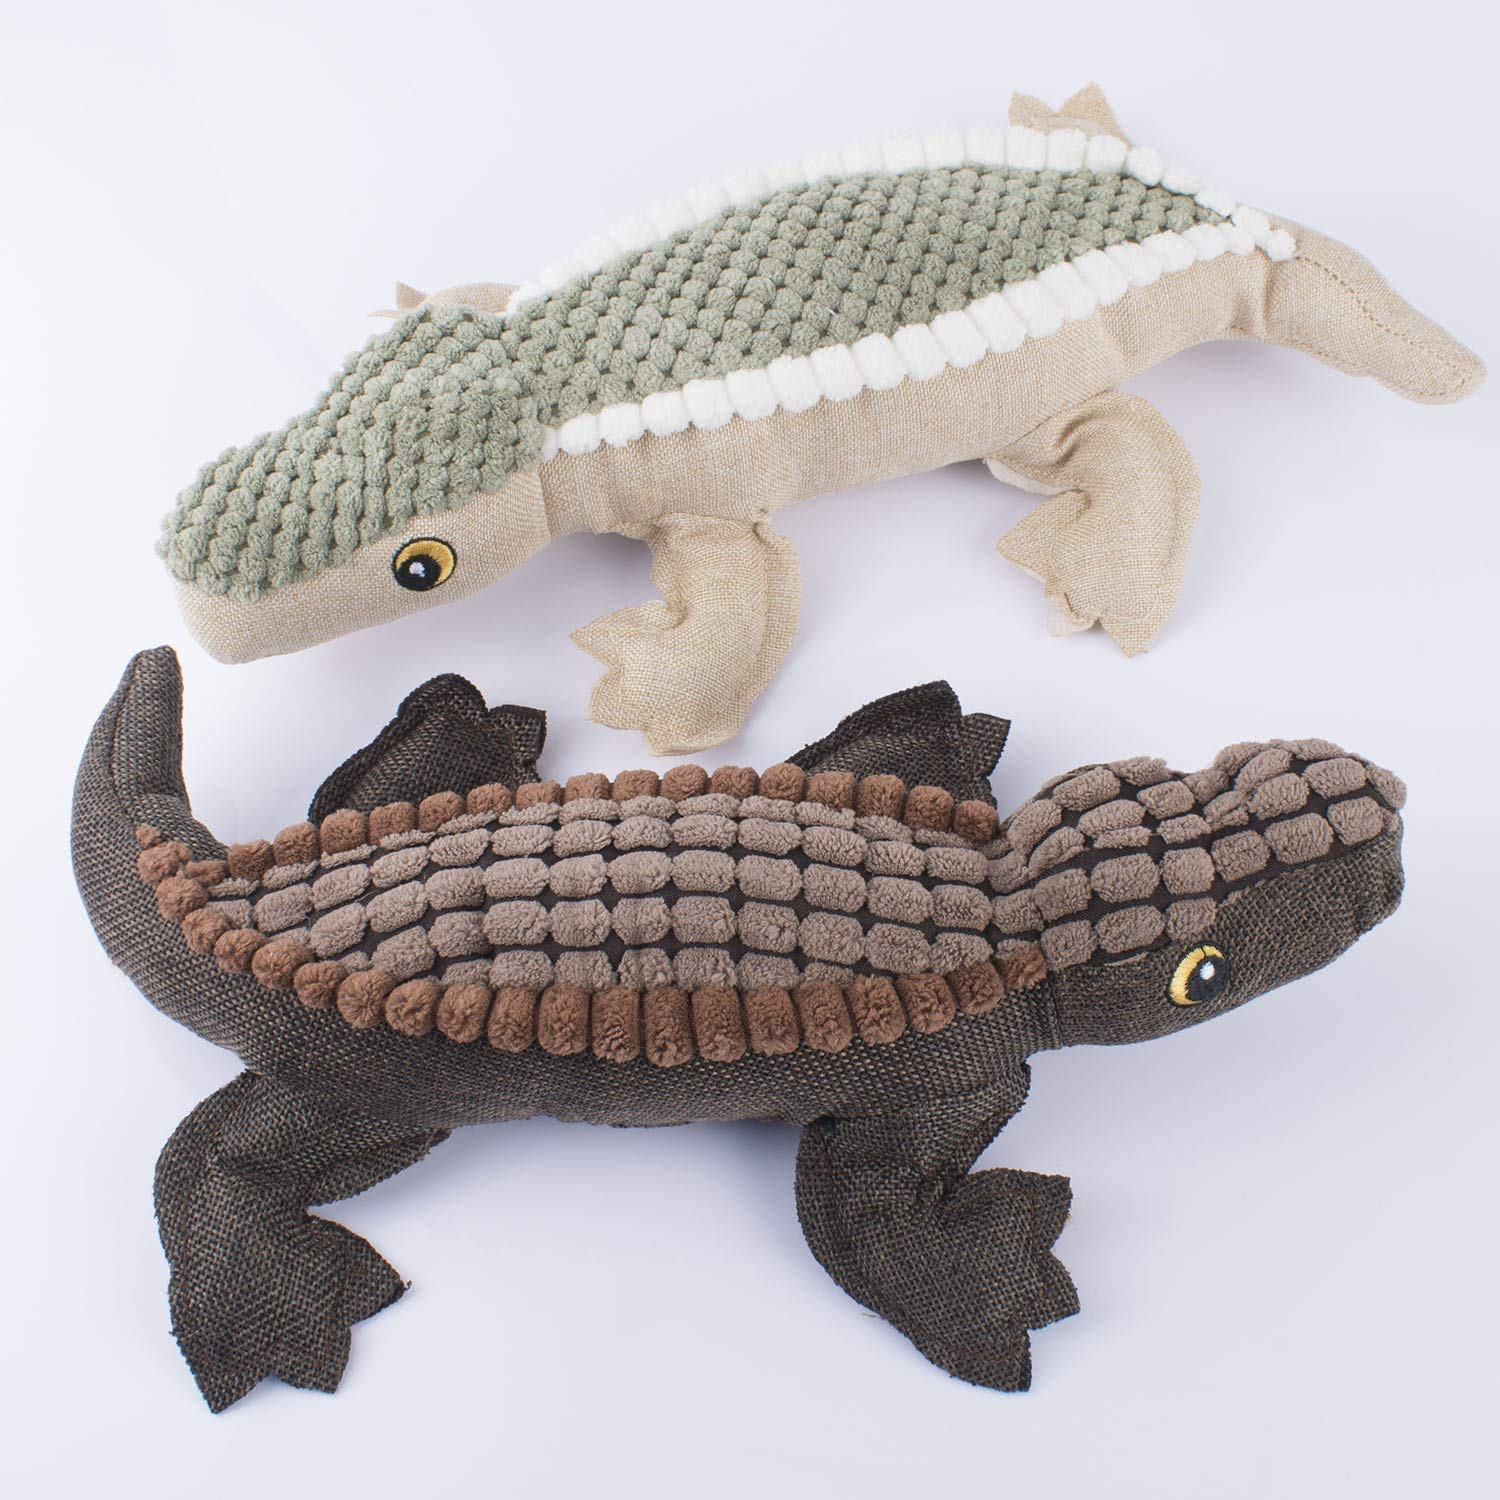 Pets Empire Dog Squeaky Toy, Crocodile Shape Soft Plush Dog Toy With Inside Squeaker, Brown